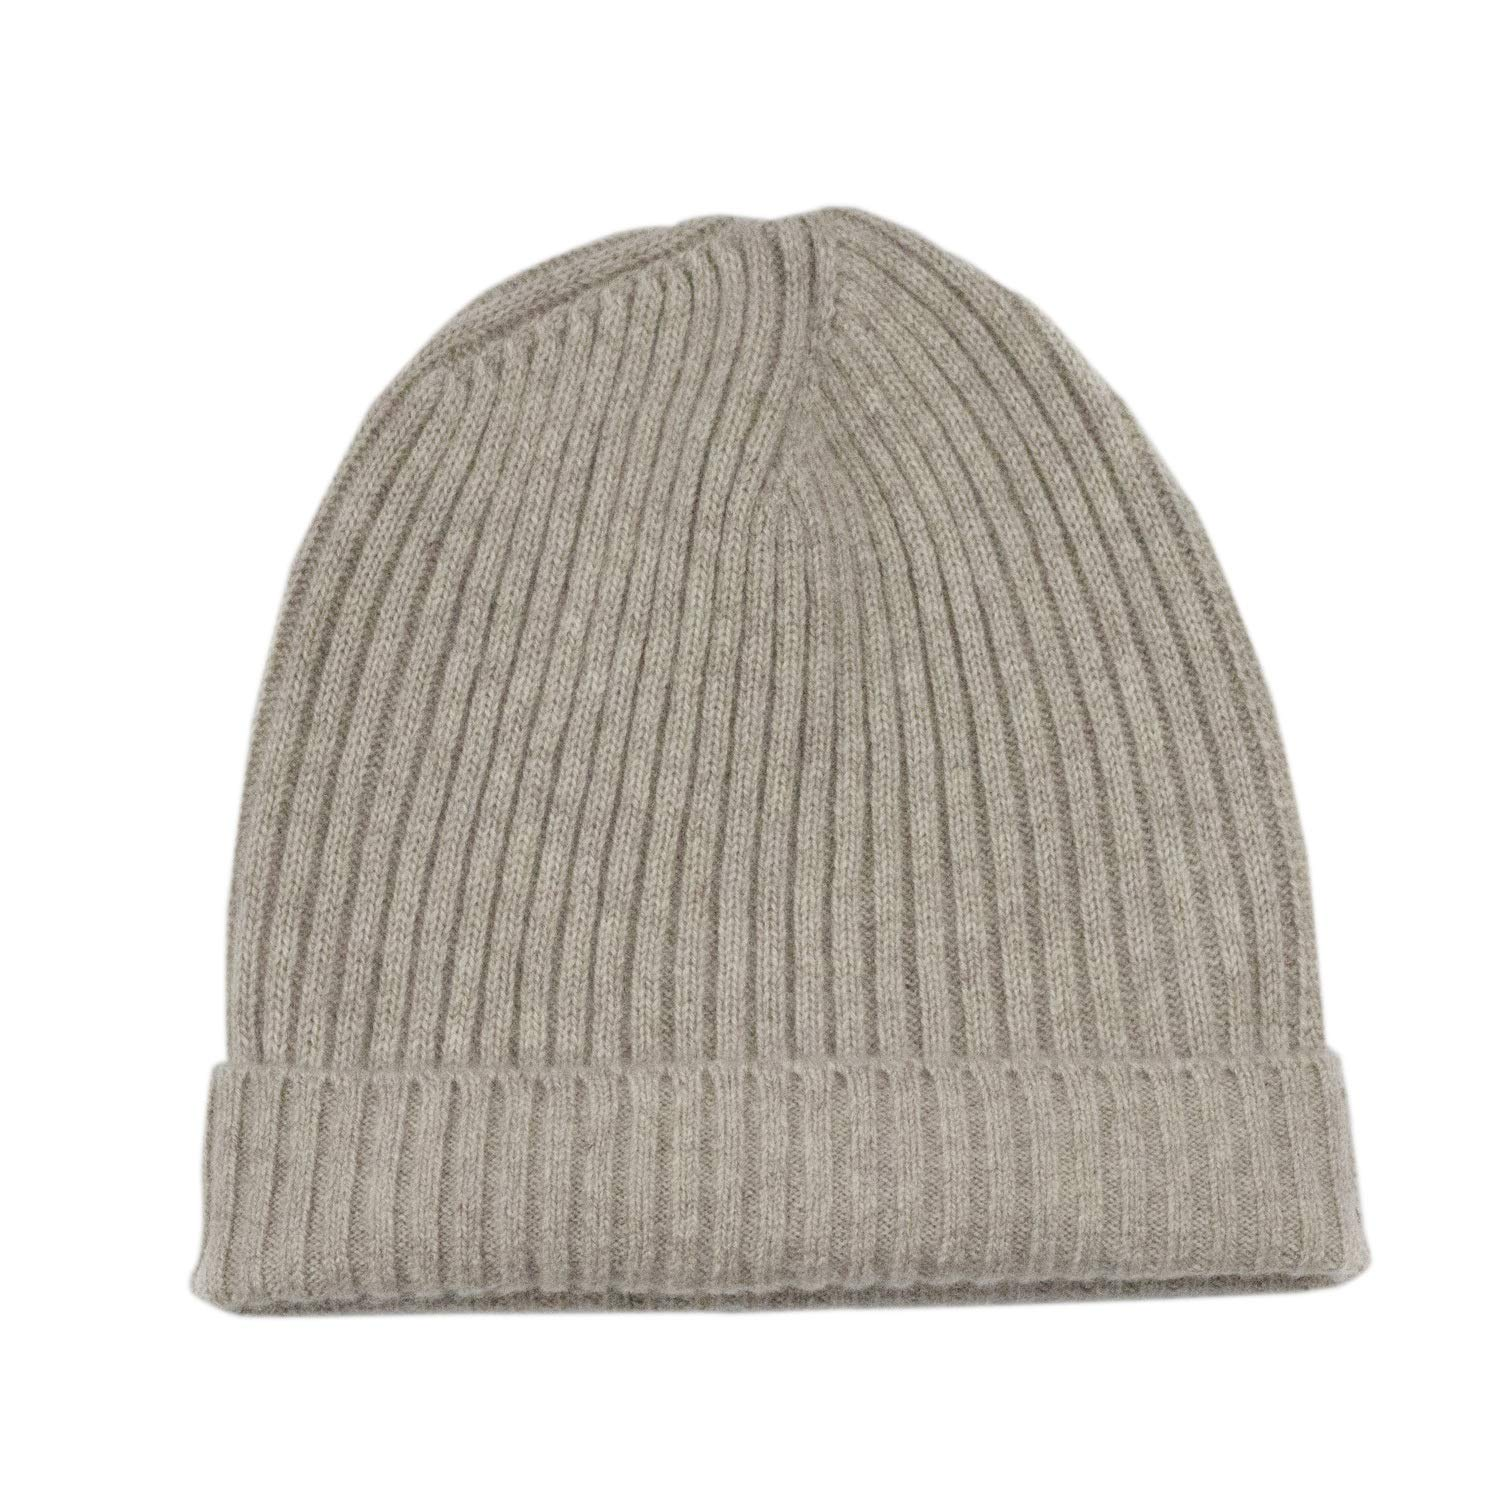 fe2bb4537 Pure 100% Cashmere Beanie for Men, Warm Soft Mens Cashmere Hat SKU